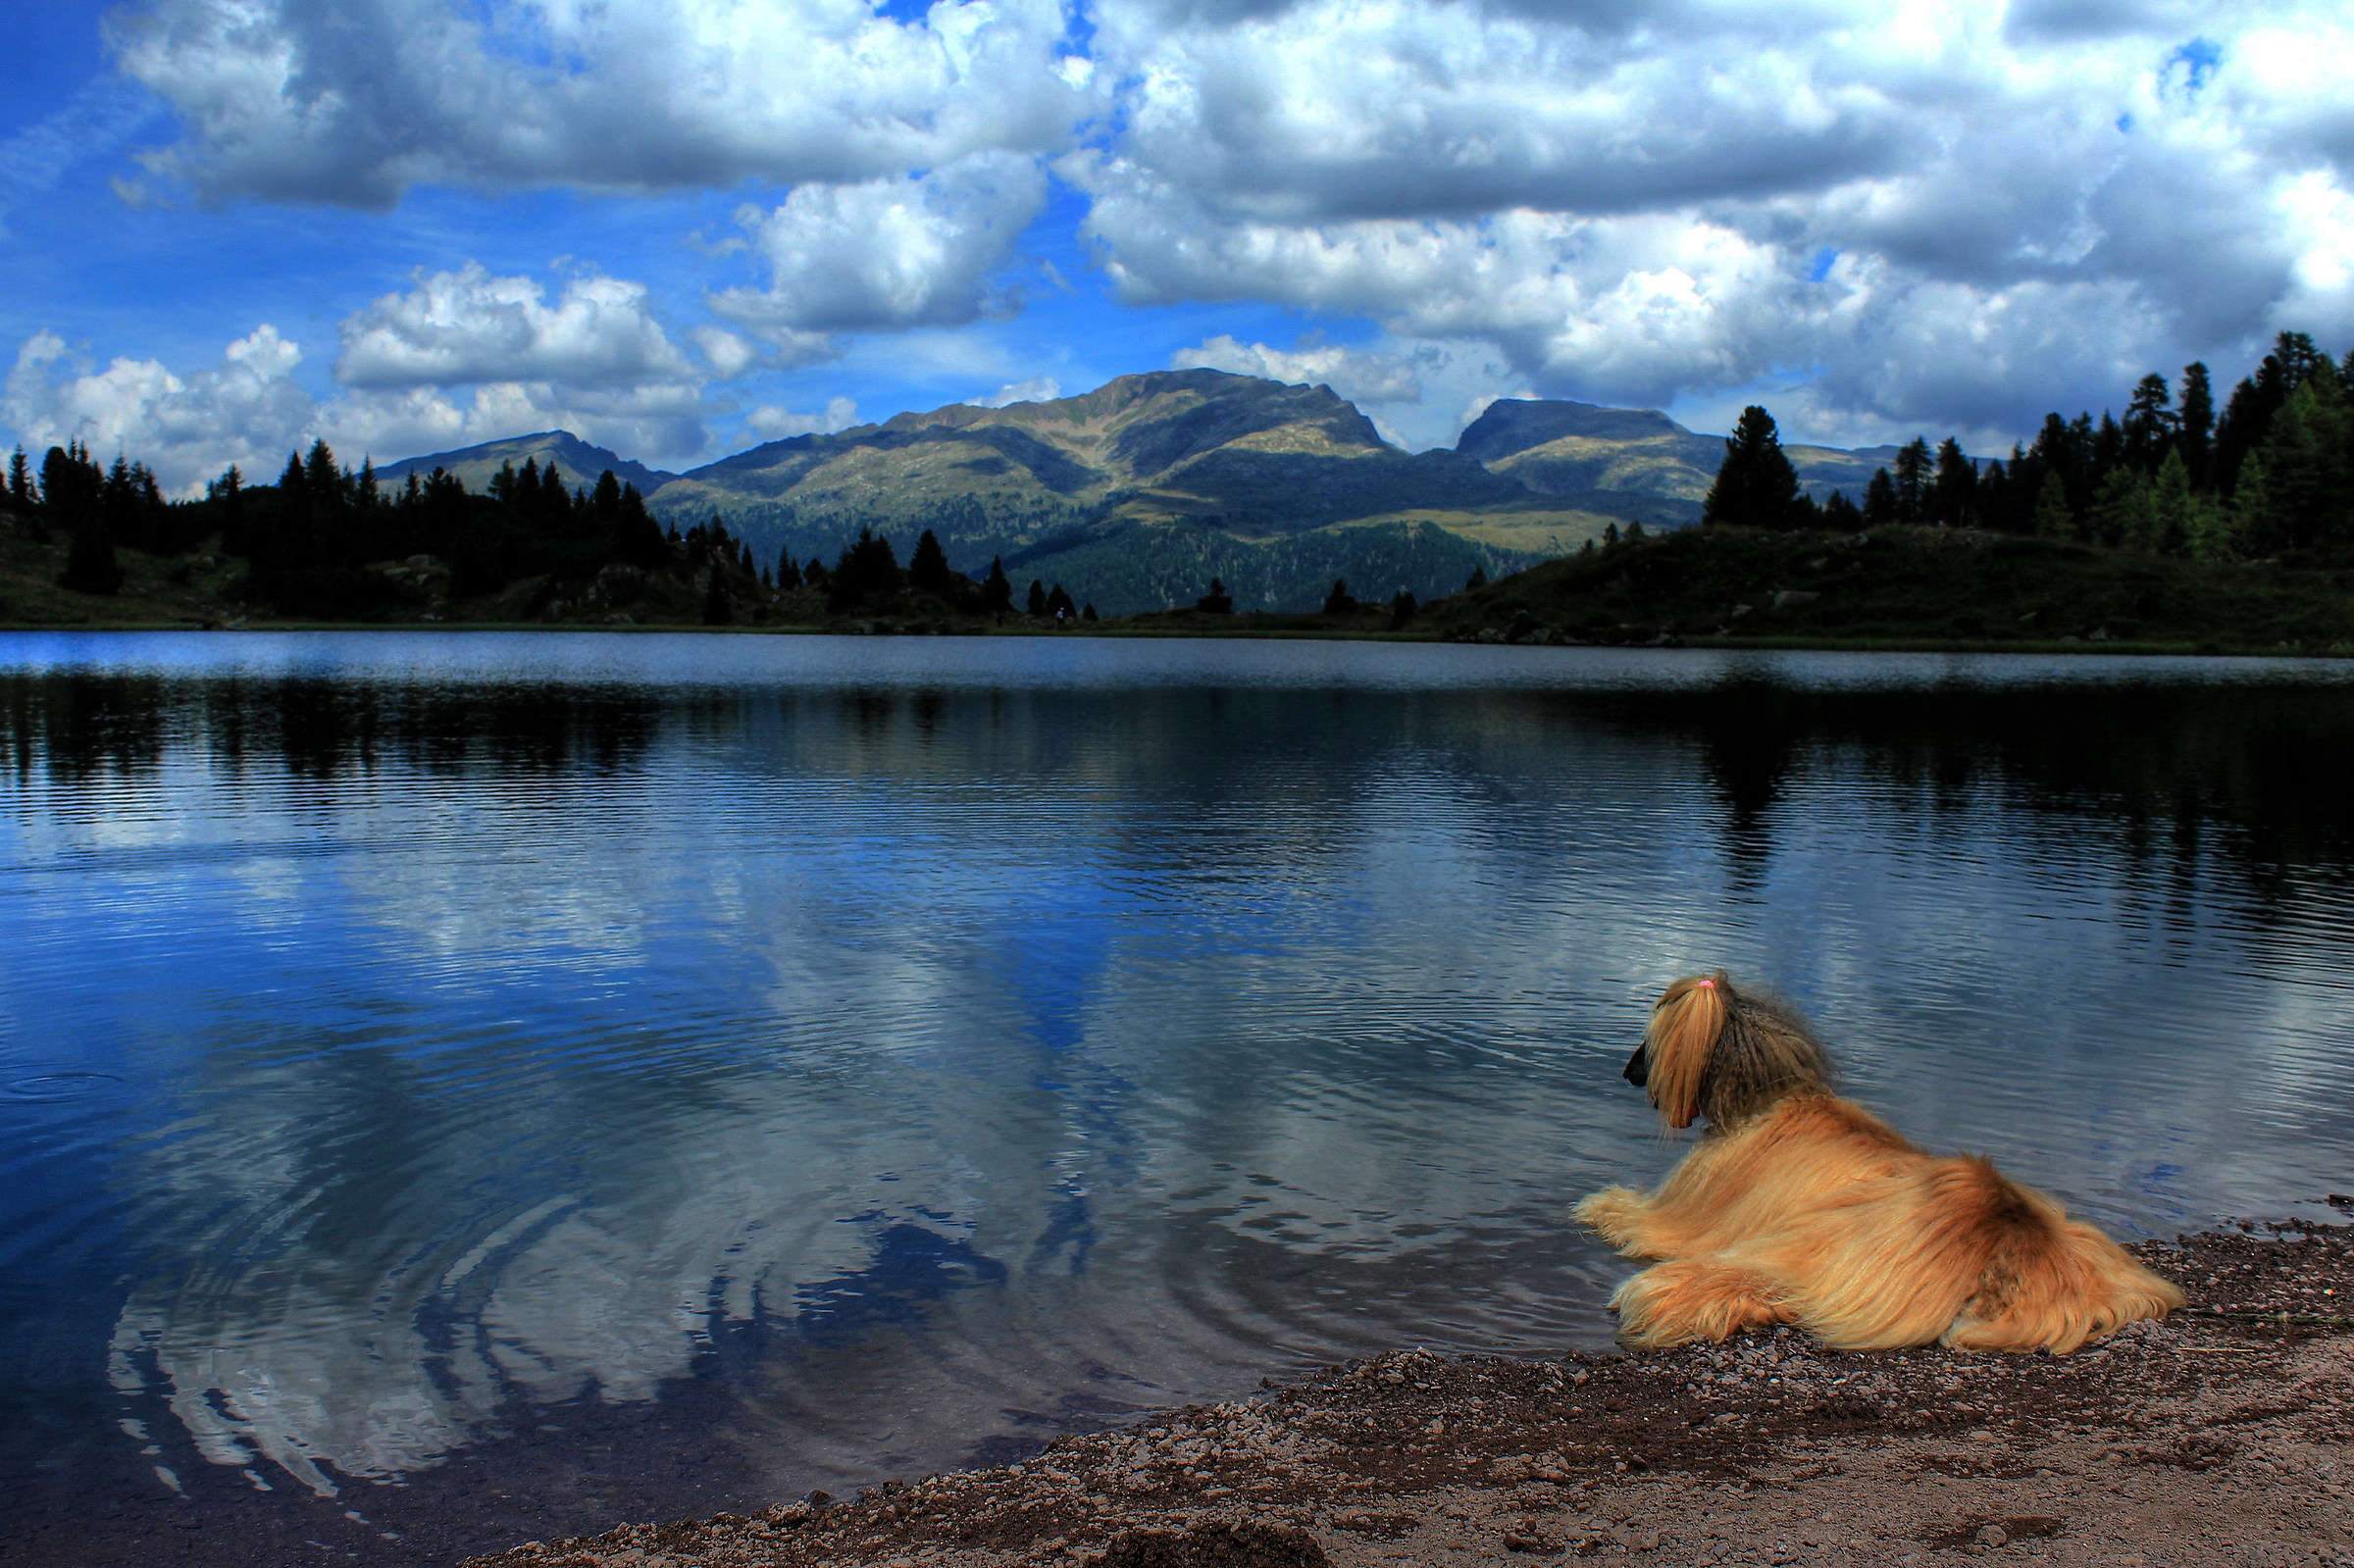 Even a dog admiring the beauty ......